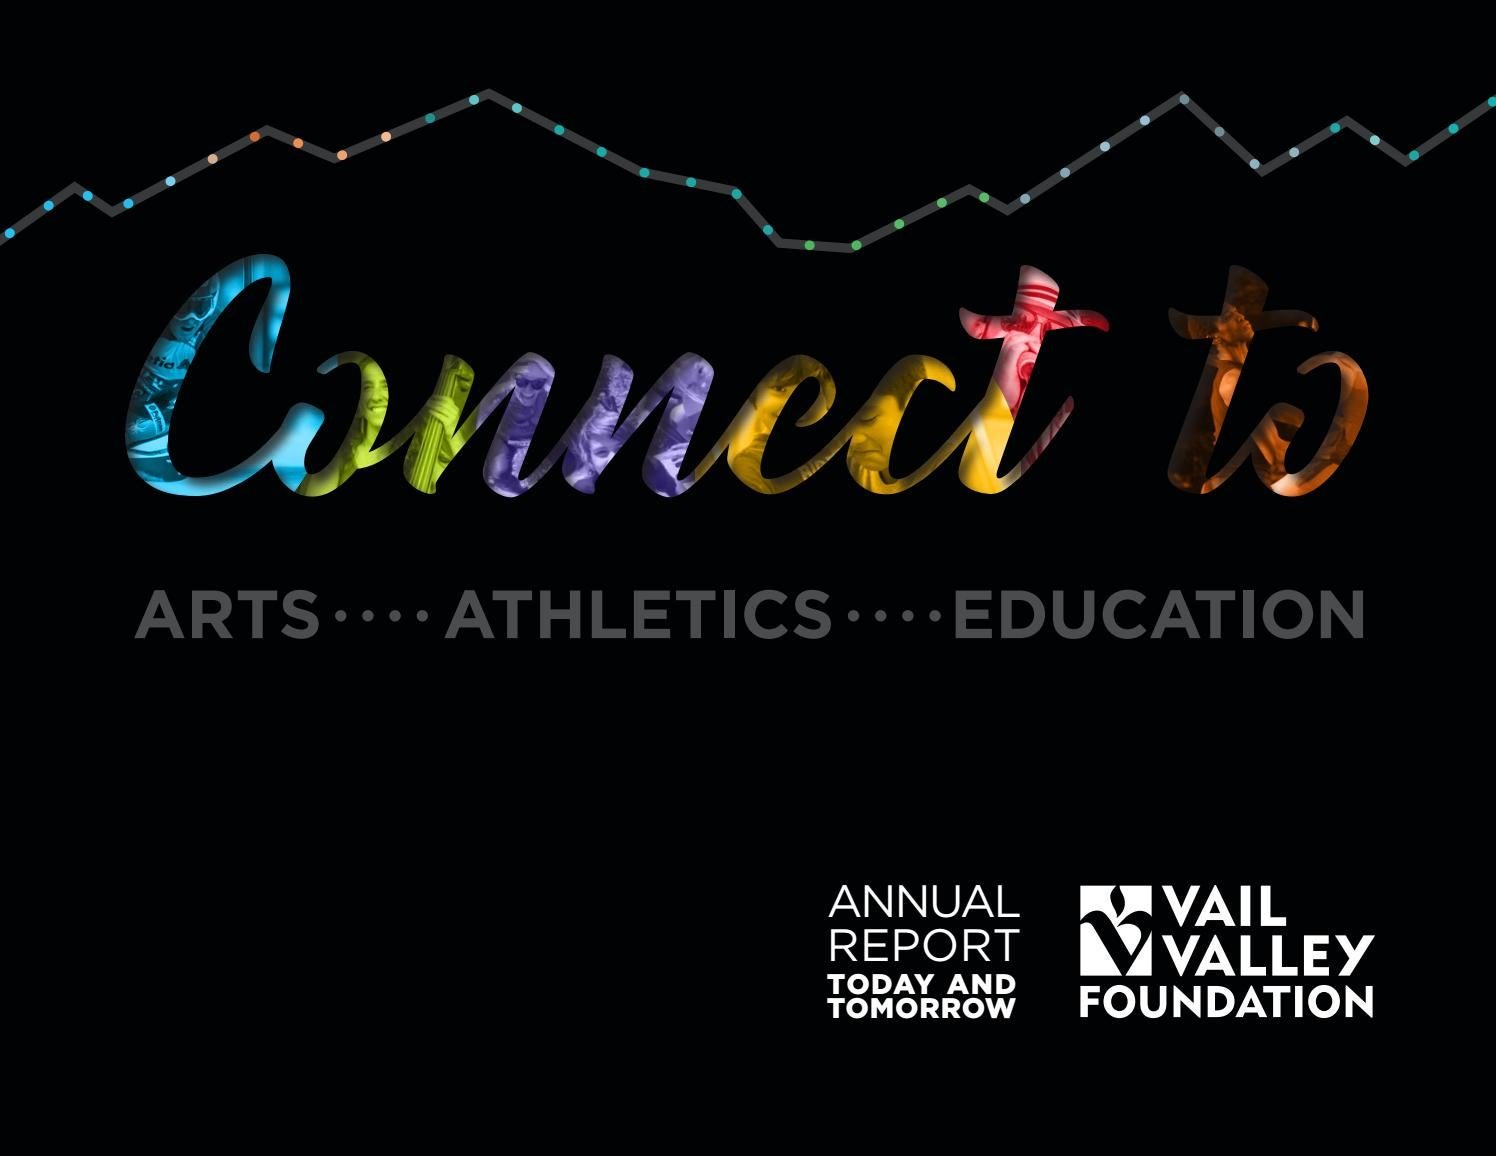 e7a1a8a13cd Vail Valley Foundation 2017 Annual Report by Vail Valley Foundation - issuu